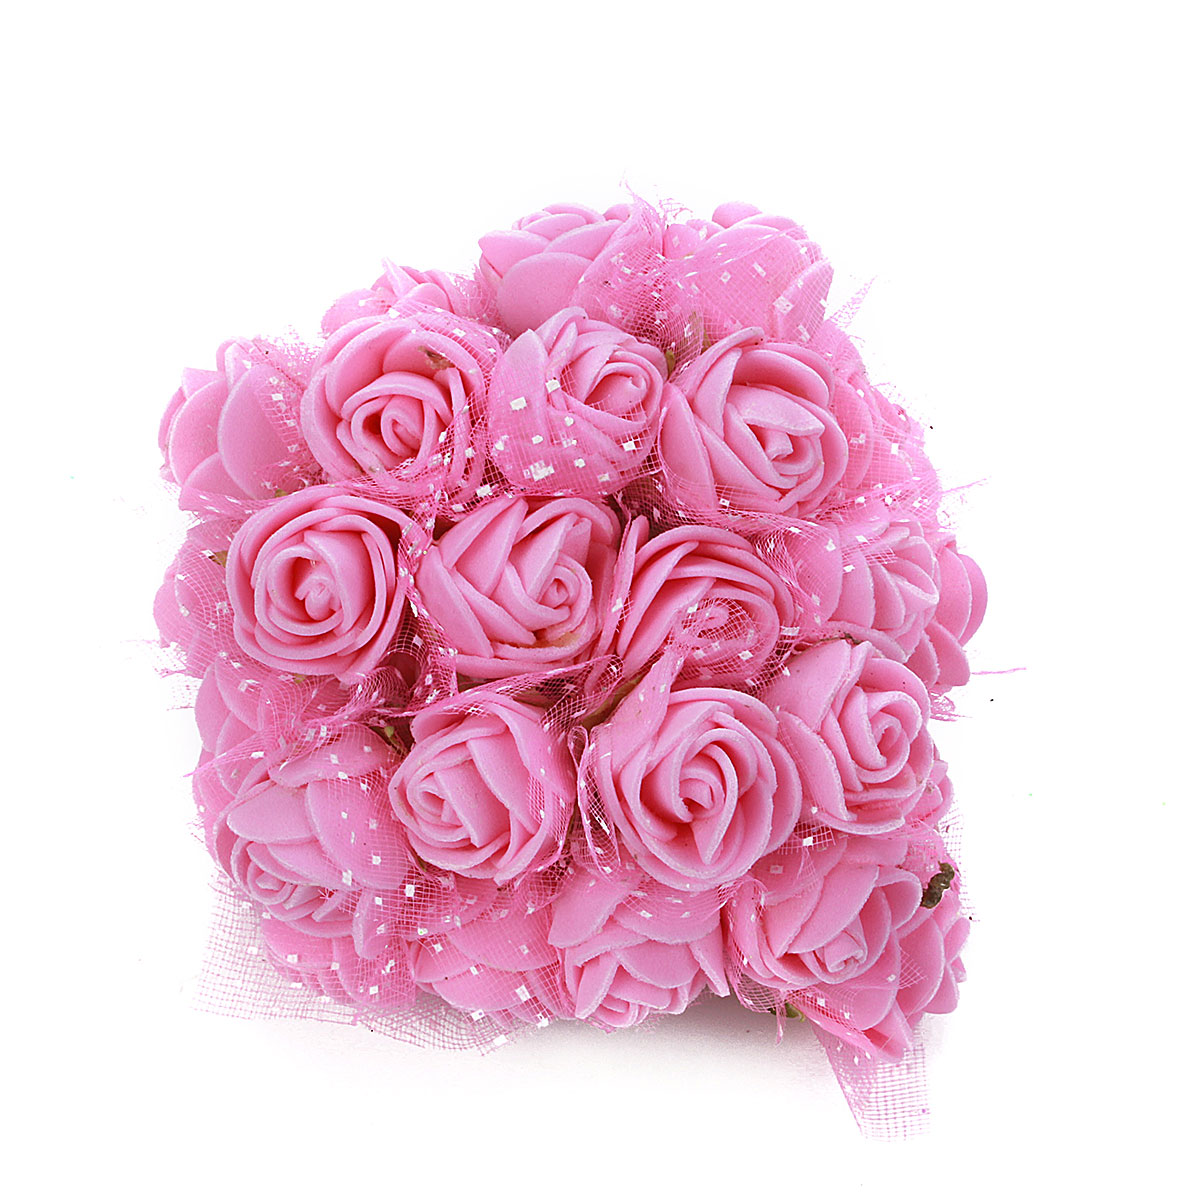 Foam Flowers -144pcs Colourfast Foam Artificial Rose Flowers Wedding Bride Bouquet Party Decor Valentine's Day Decoration(Mini Size)